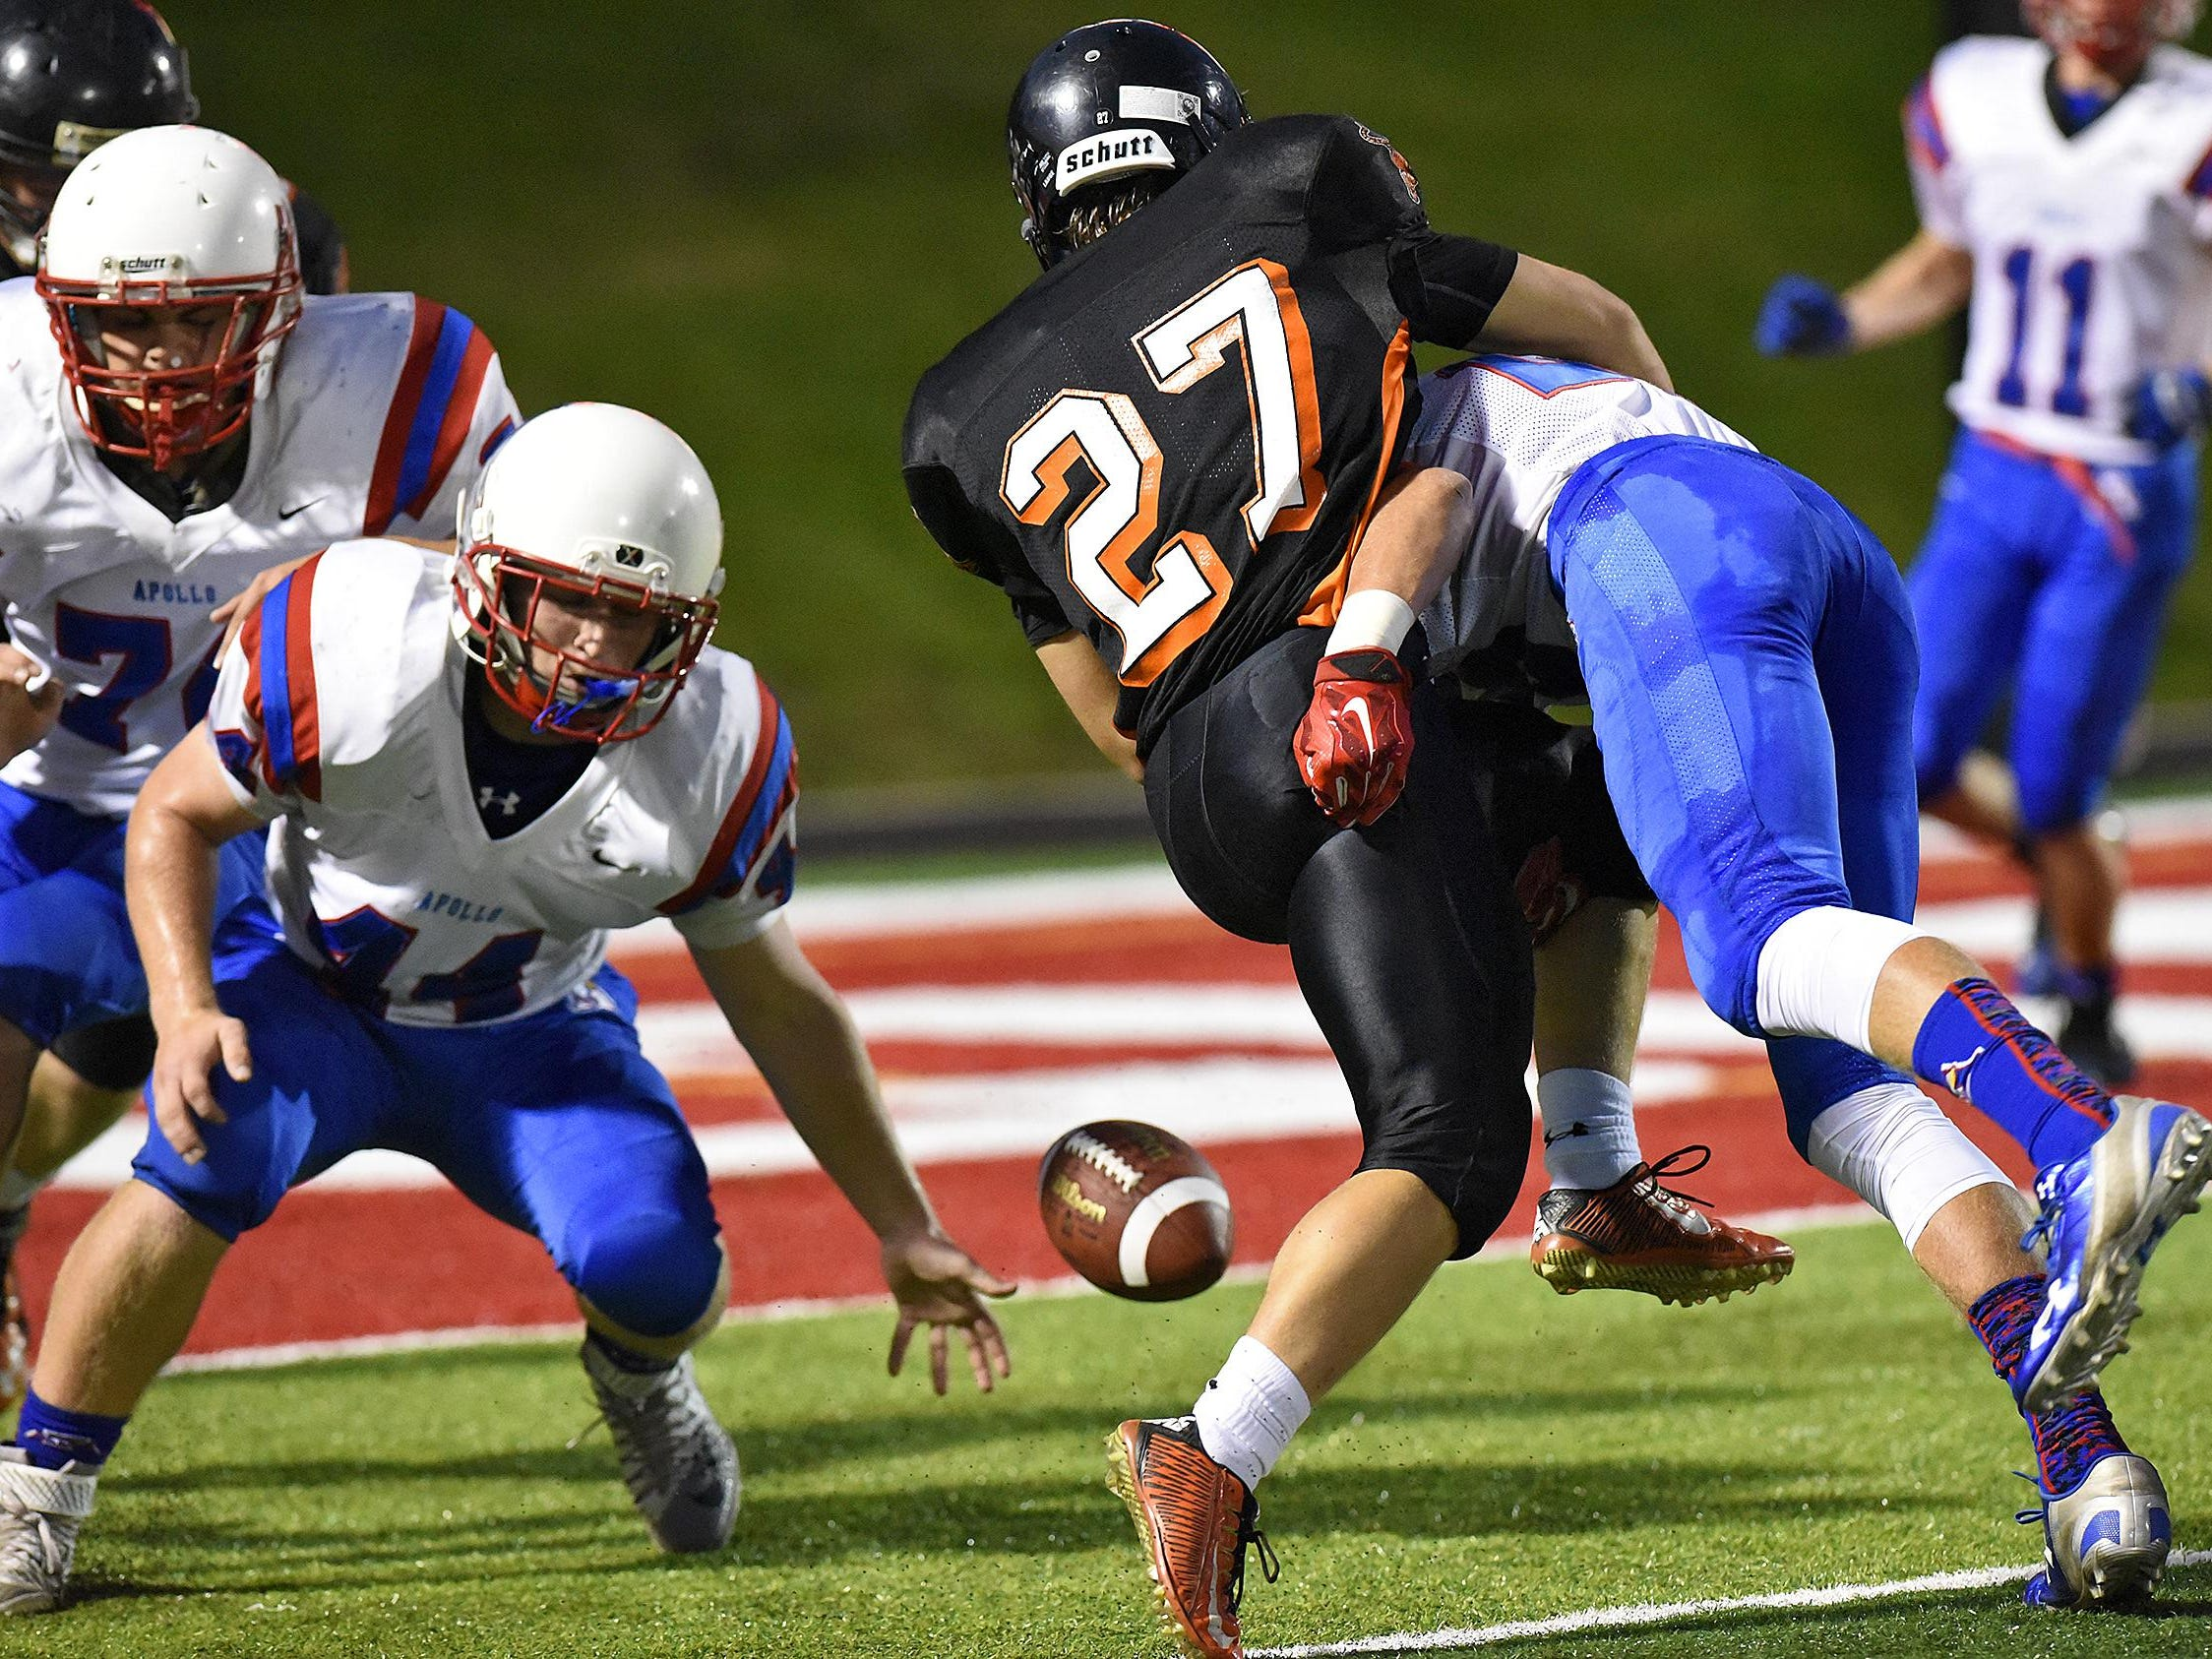 Players concentrate on a loose ball near the goal line during the first half of Friday's game at Husky Stadium in St. Cloud.